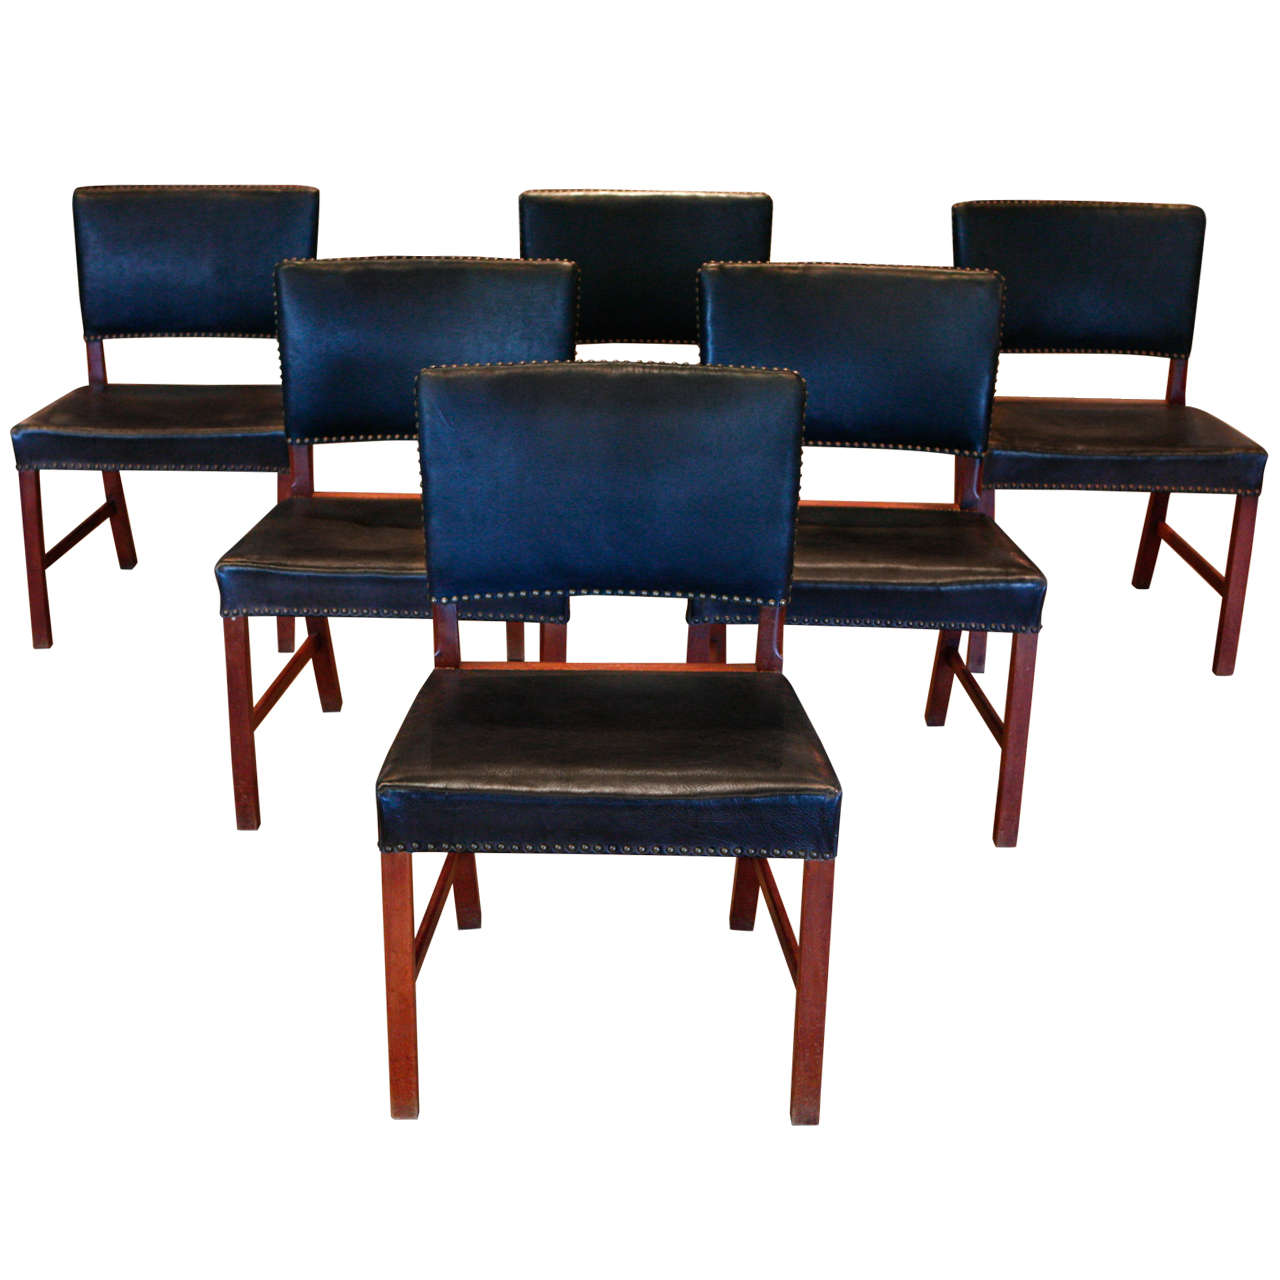 Set of Danish Dining Chairs C 1930 at 1stdibs